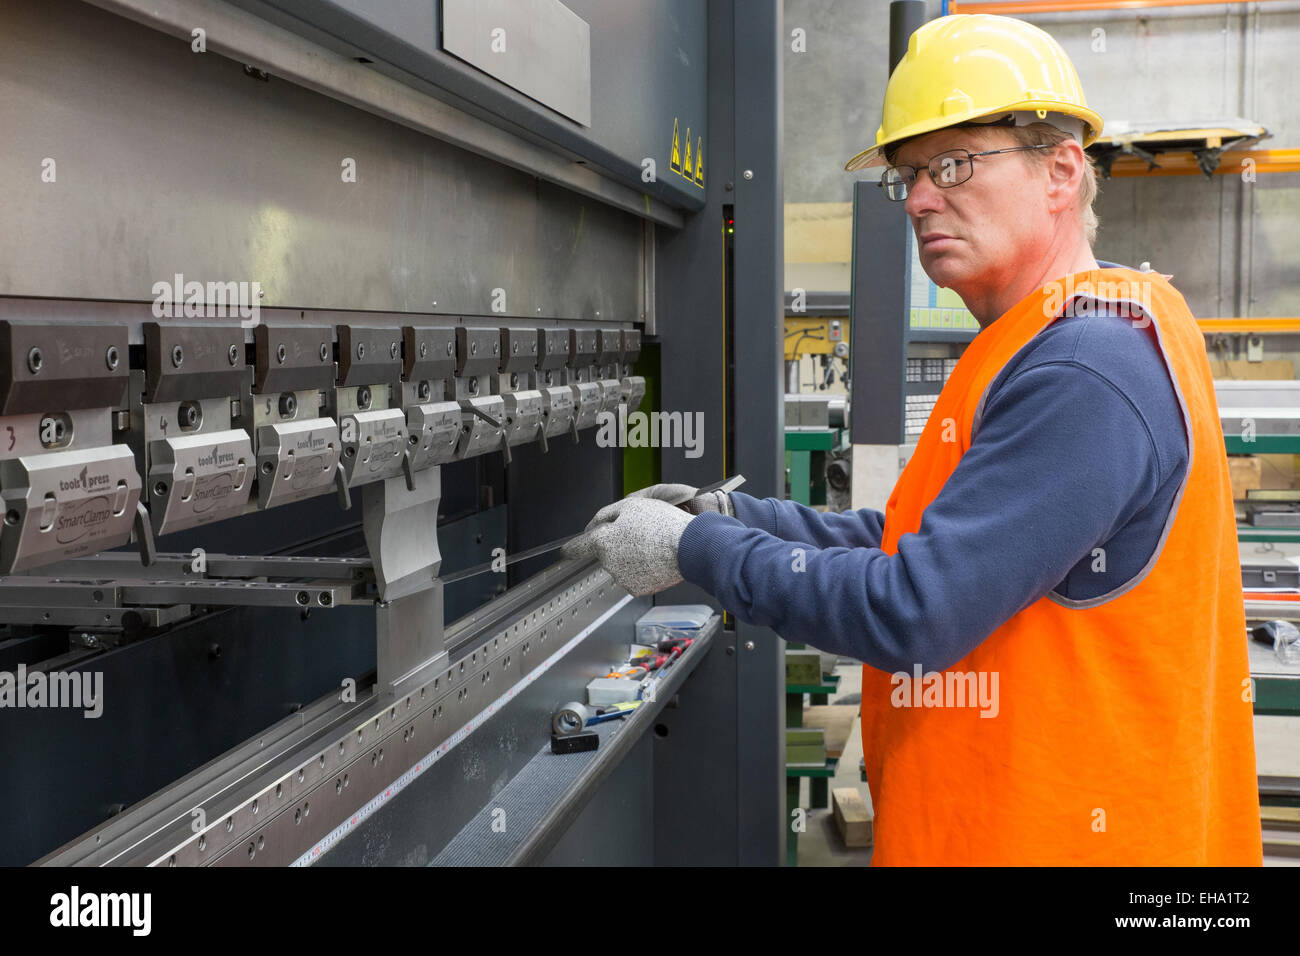 metal industry worker operates CNC brake press machine Stock Photo